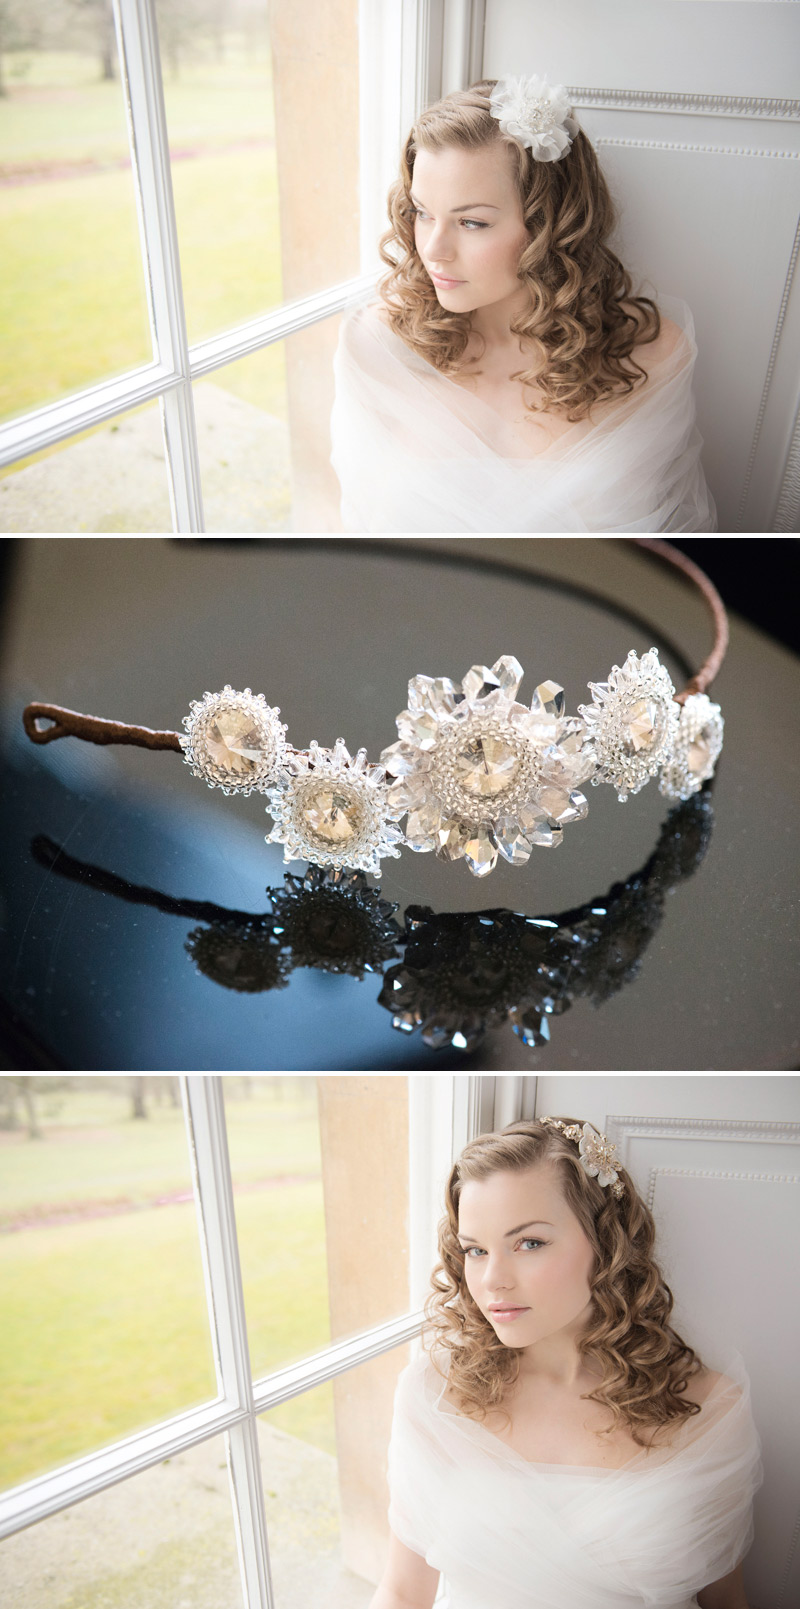 Polly-Edwards-bridal-accessories-3